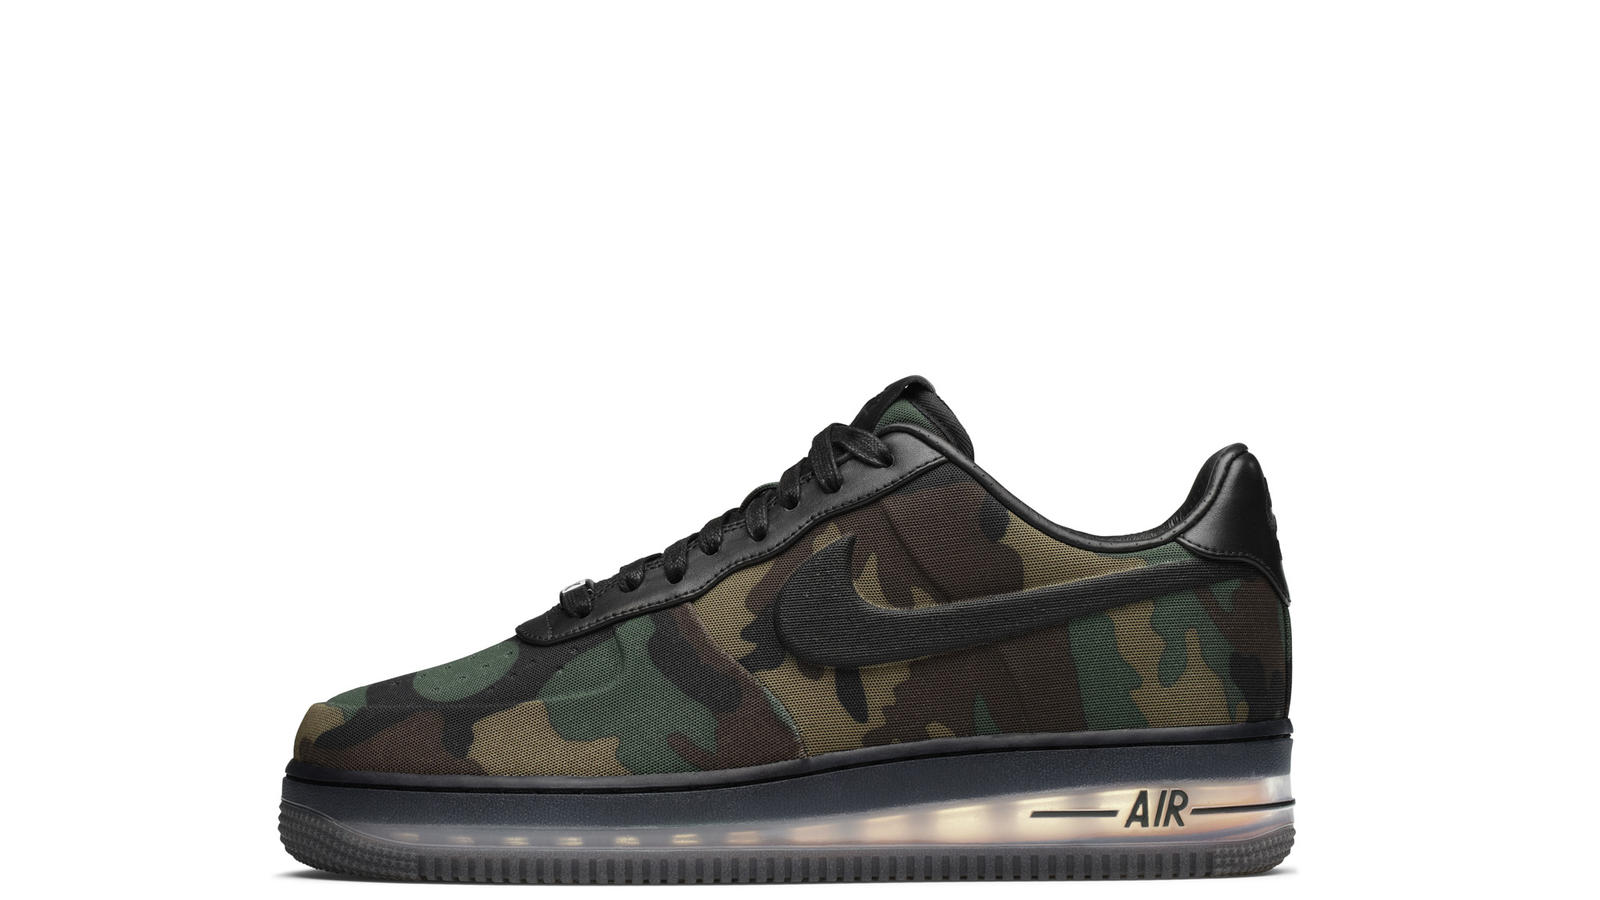 Air Force 1 Low Max Air VT Nike News